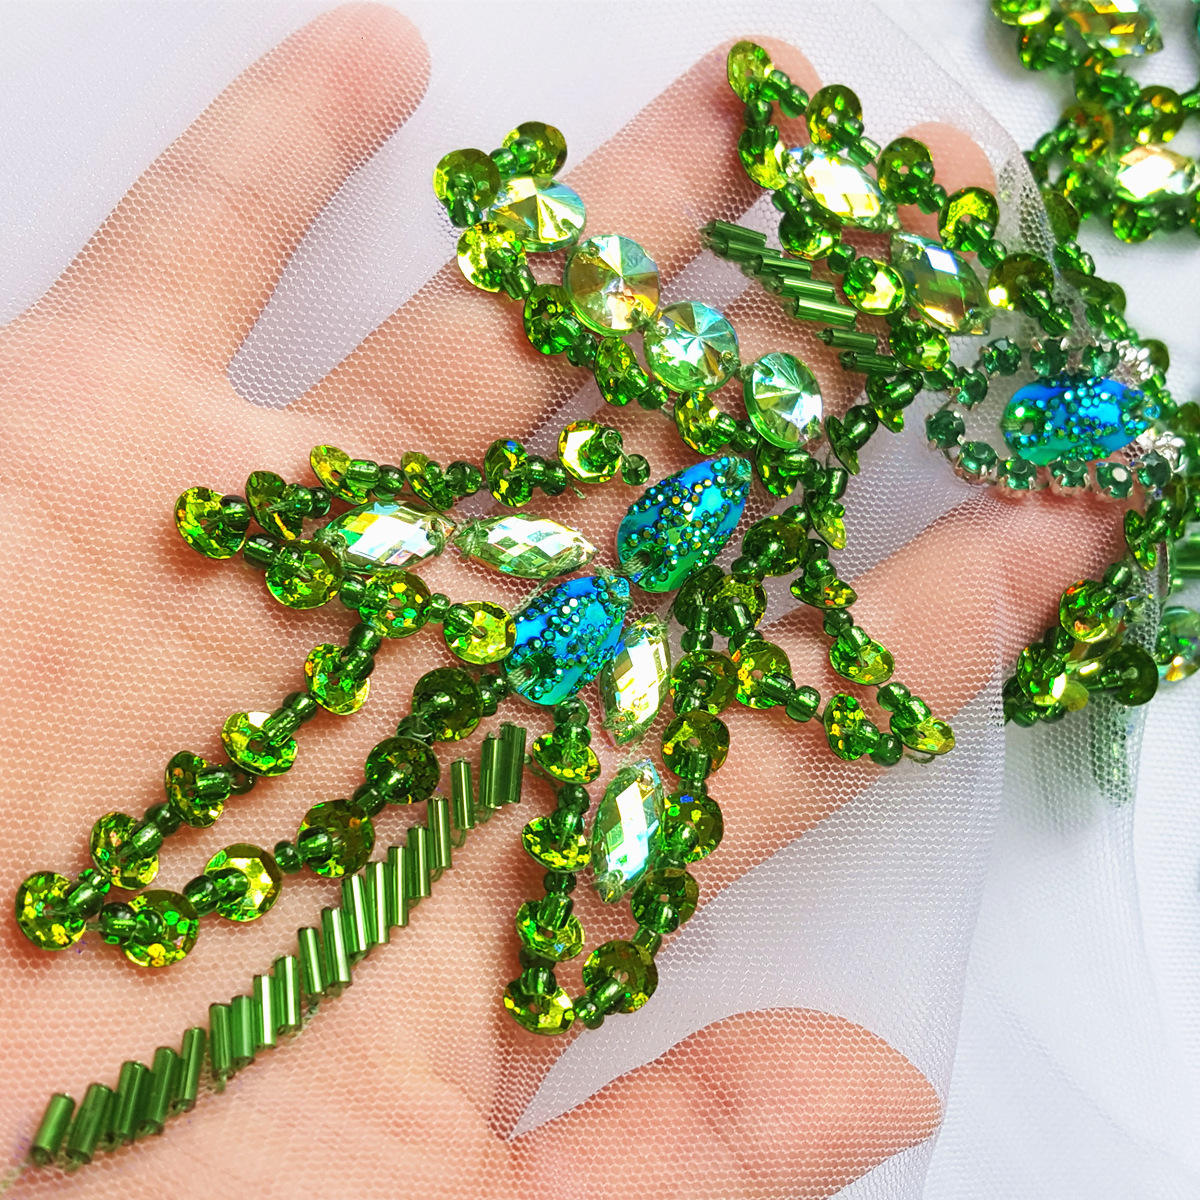 8cf5fdaaa7 US $24.74 25% OFF|UNique Goddess Beaded Sew on Rhinestones Sequins Applique  Crystals Patches Green wedding Emboridery bridal decorative for cloth-in ...